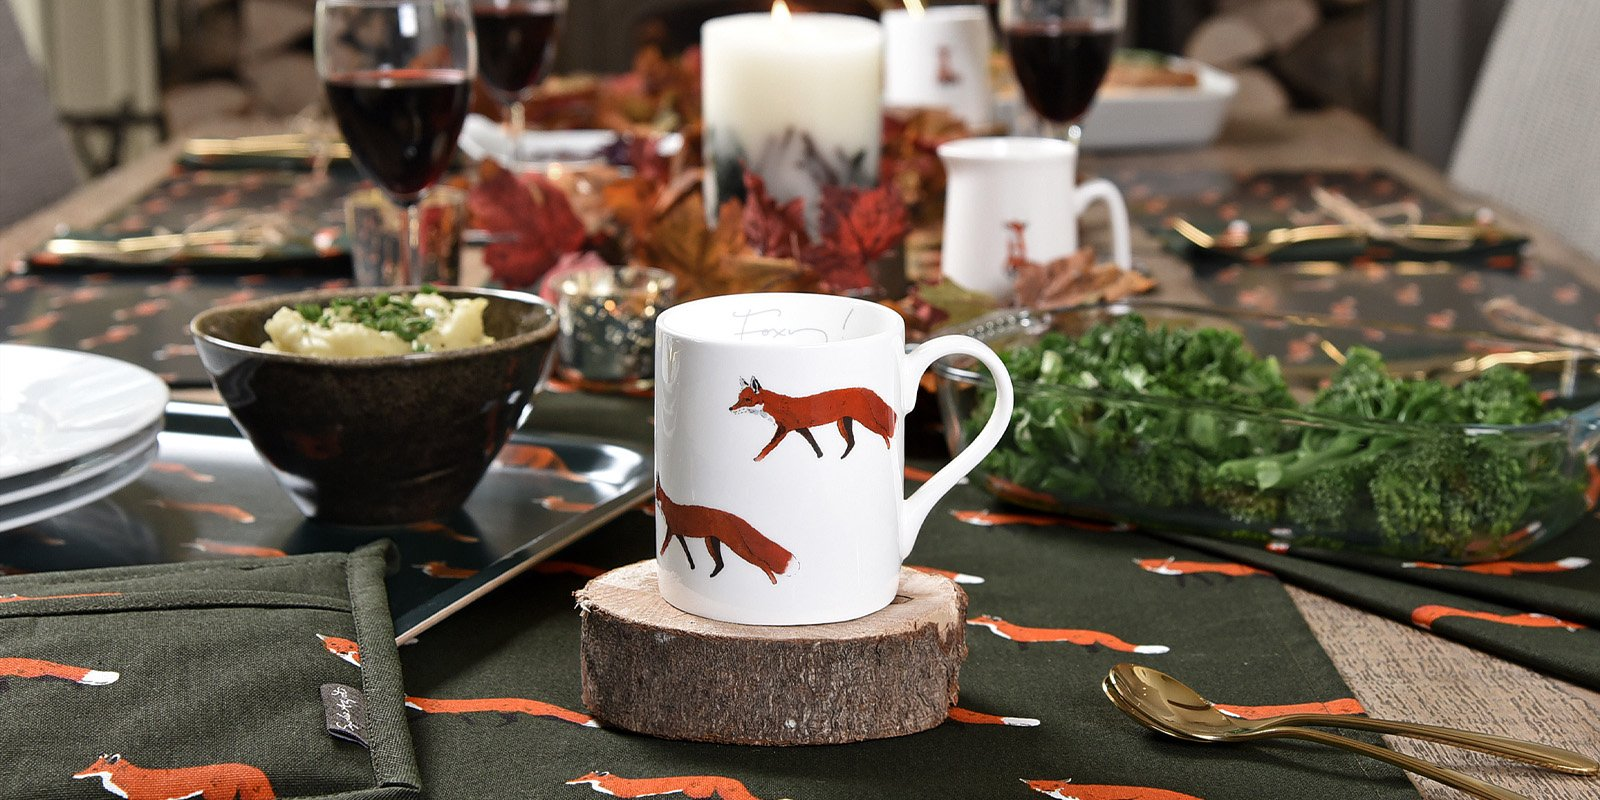 Foxes Forest Green and Burnt Orange Homewares and Accessories by Sophie Allport